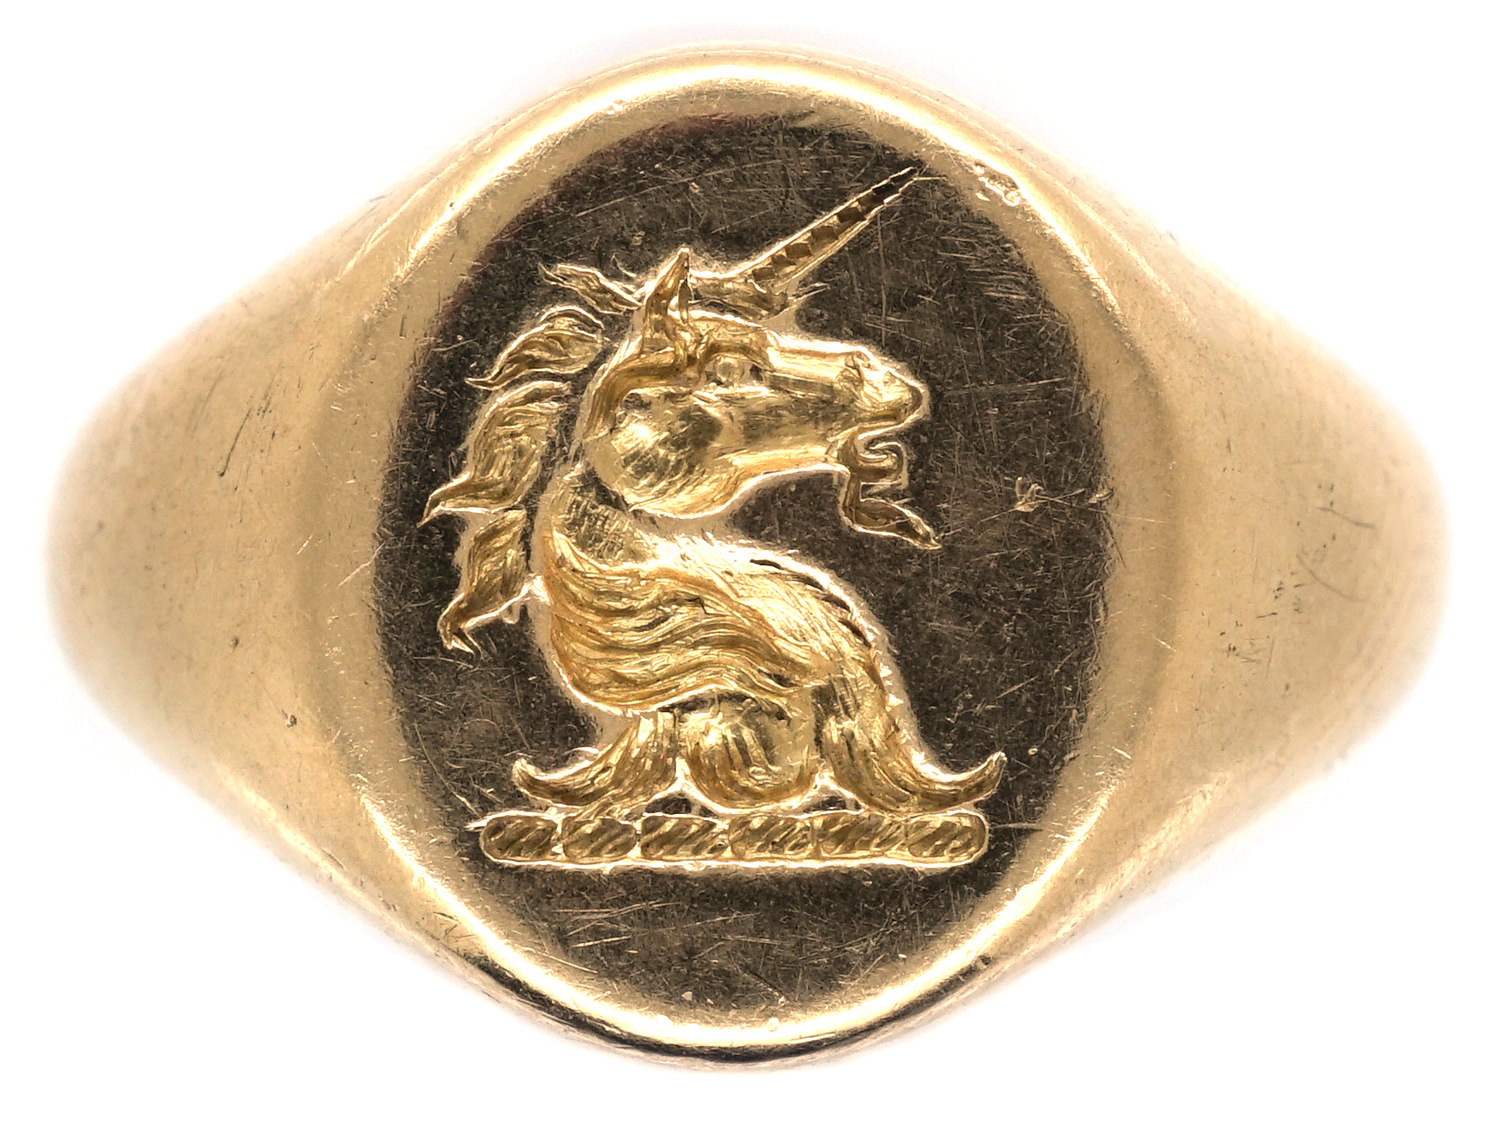 18ct Gold Signet Ring Retailed by Cartier with Unicorn Intaglio